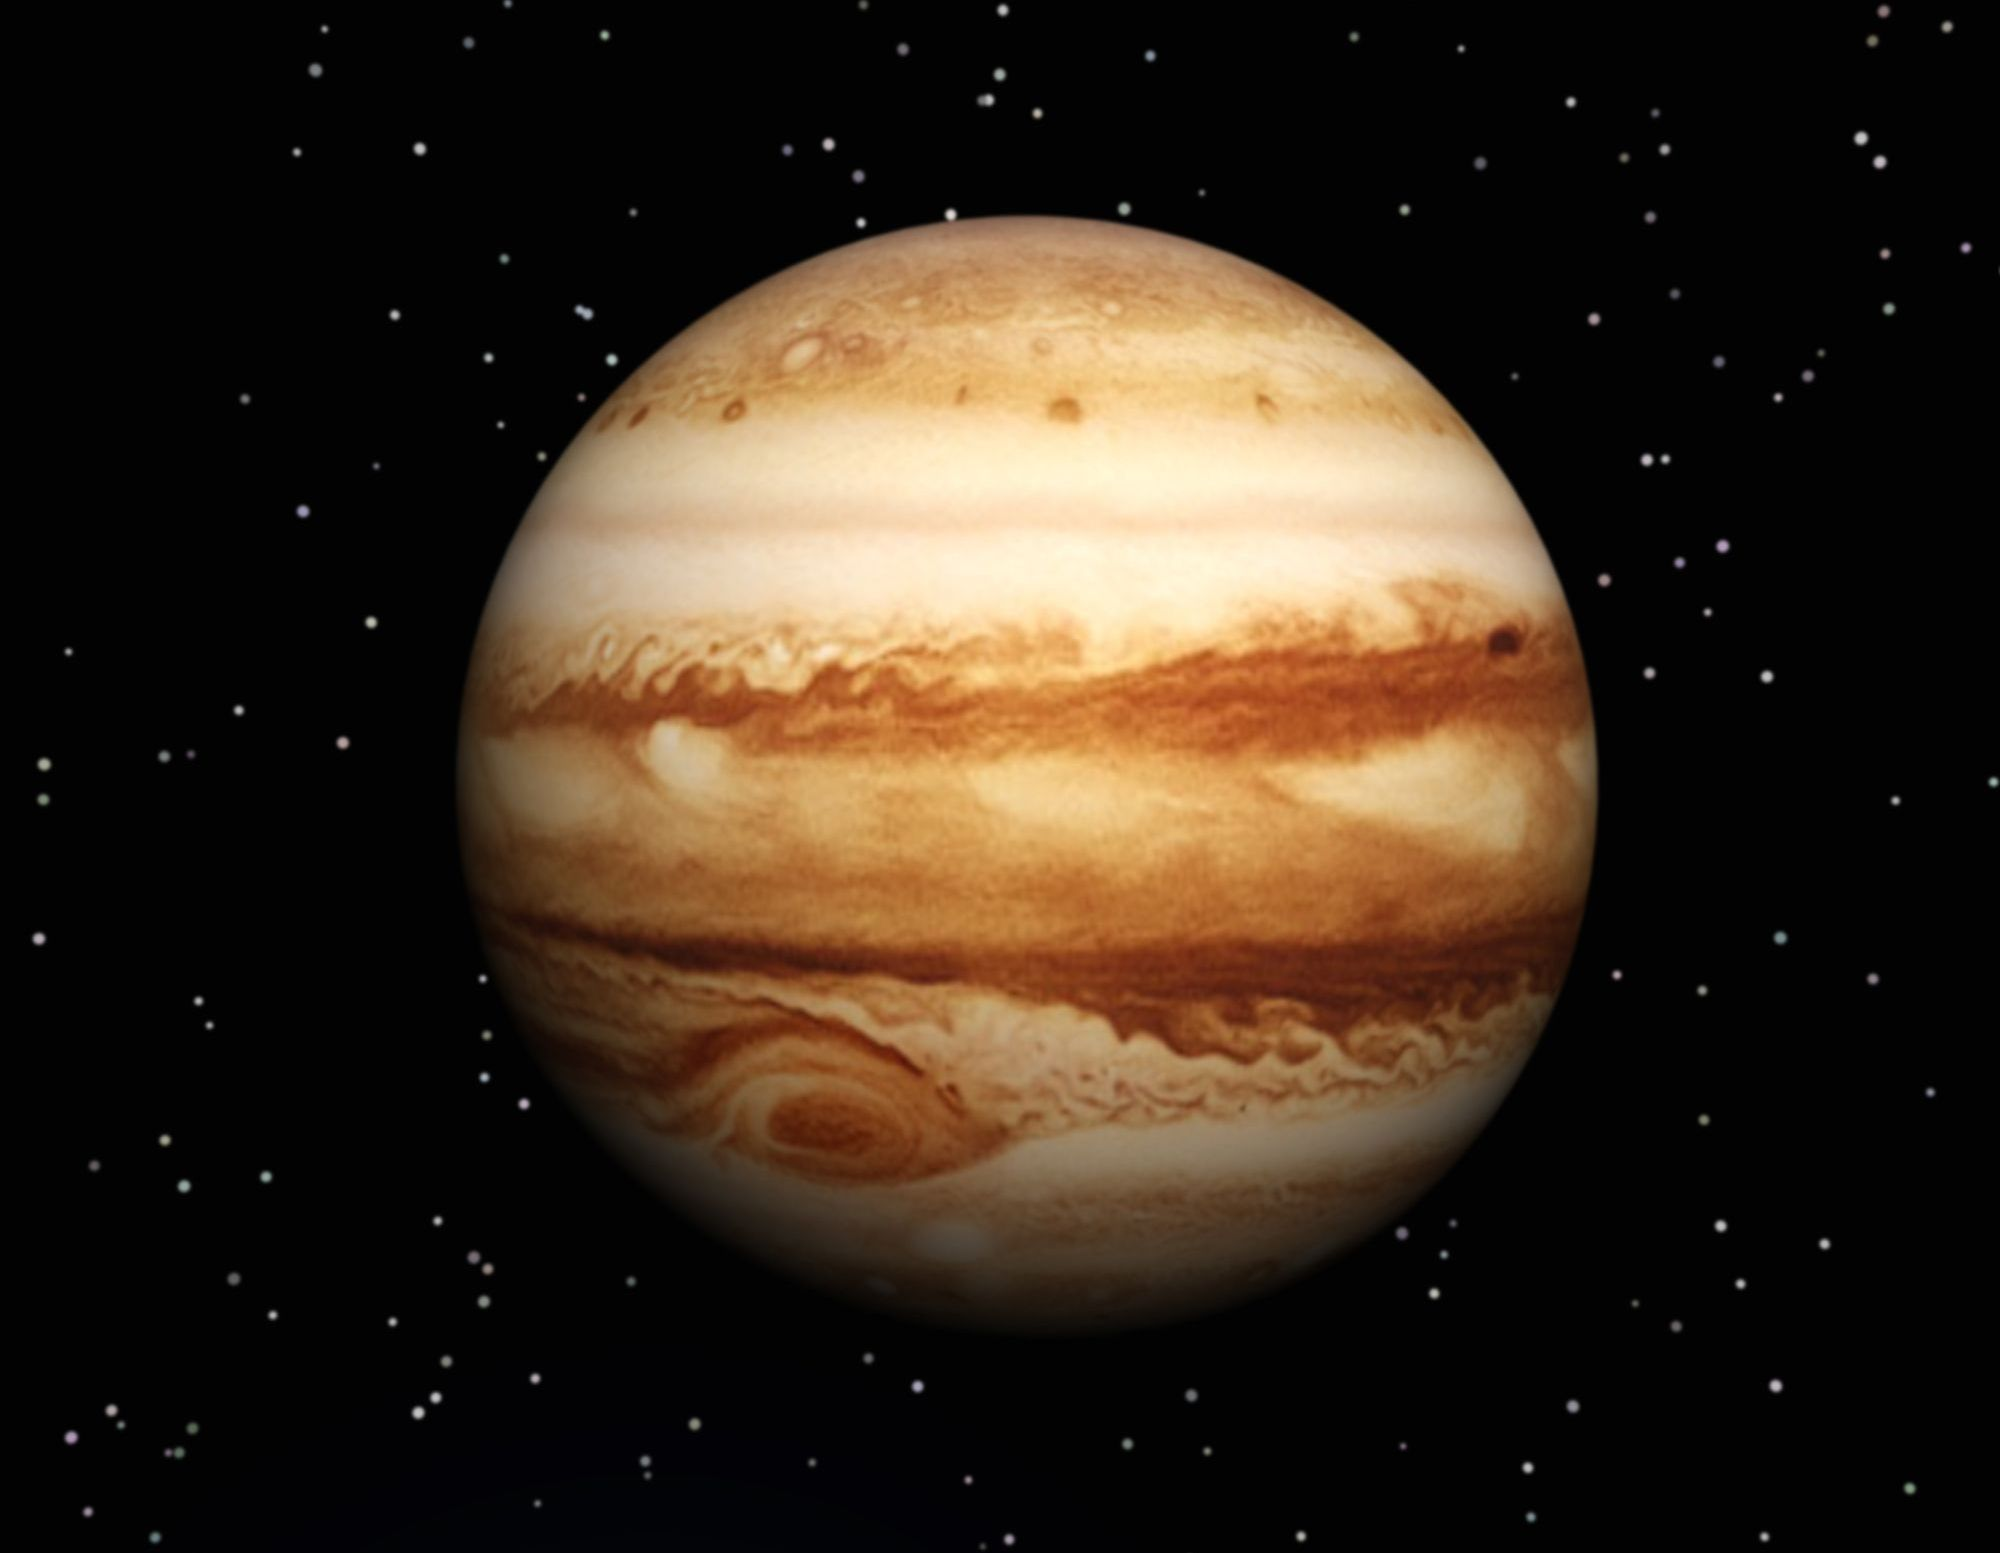 Jupiter is the largest planet in our Solar System